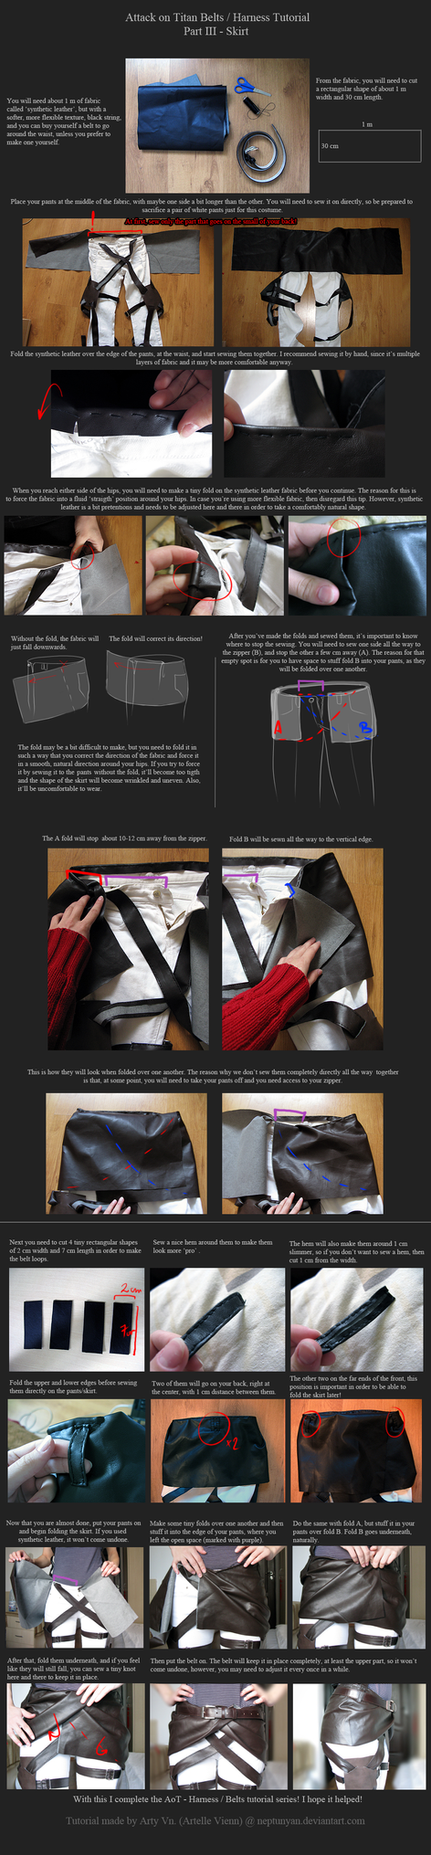 AoT Belts/Harness Tutorial - Part III - Skirt by neptunyan